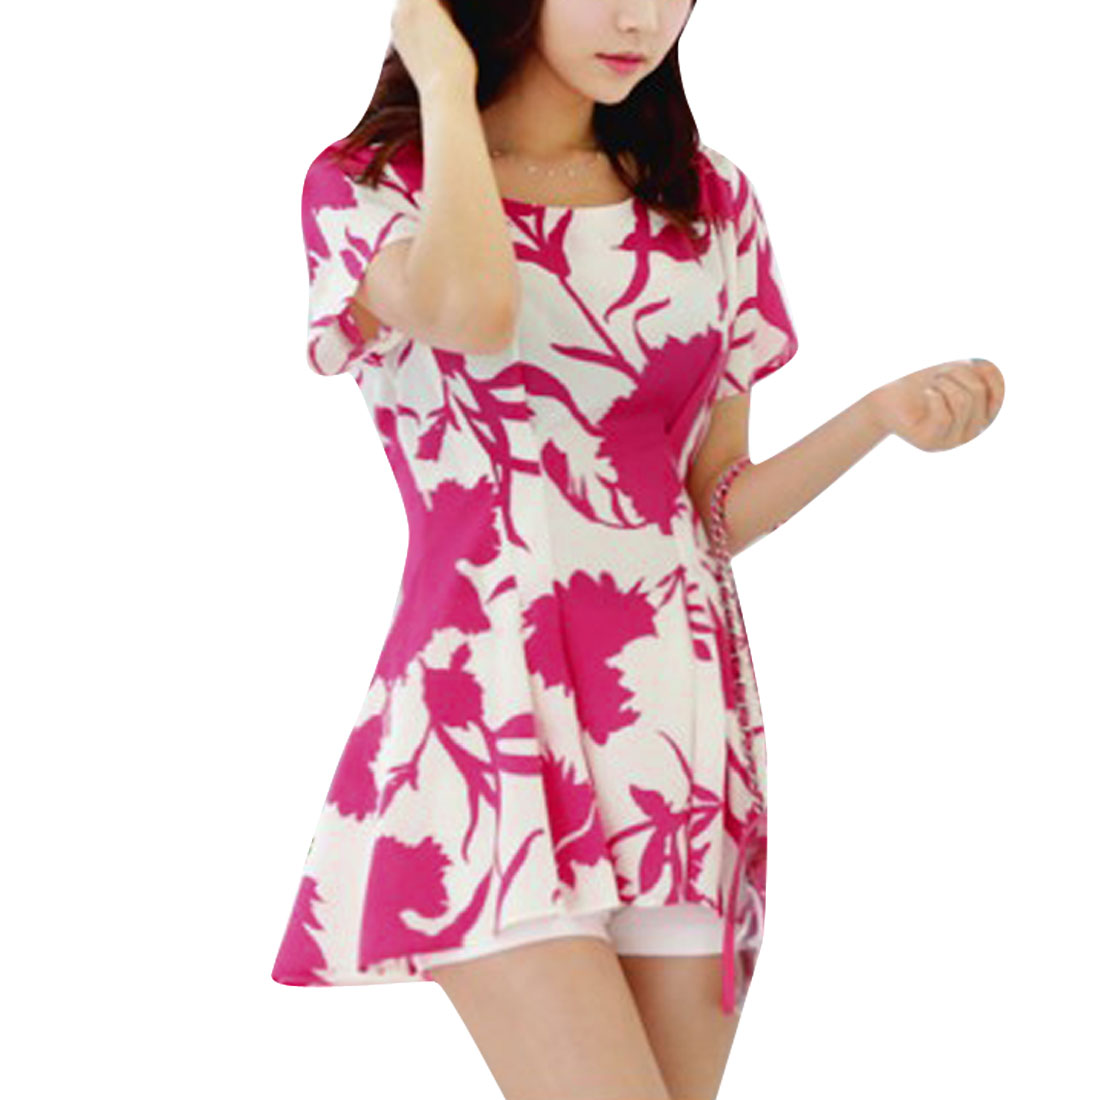 Women Two Tone Round Neck Floral Pattern Style Tunic Top White Fuchsia XS